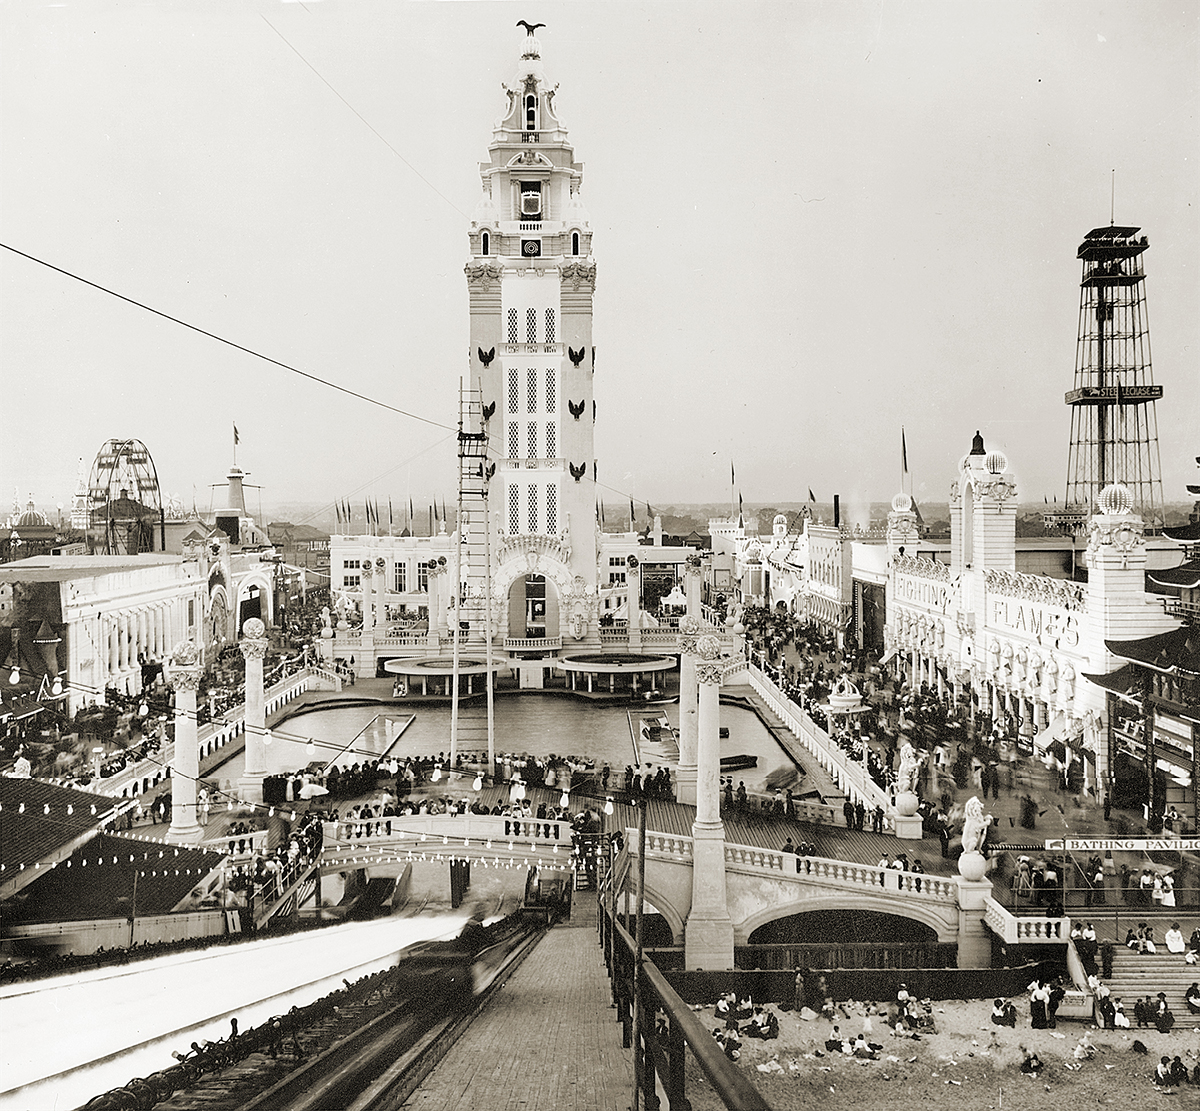 Ride Back in Time at Coney Island